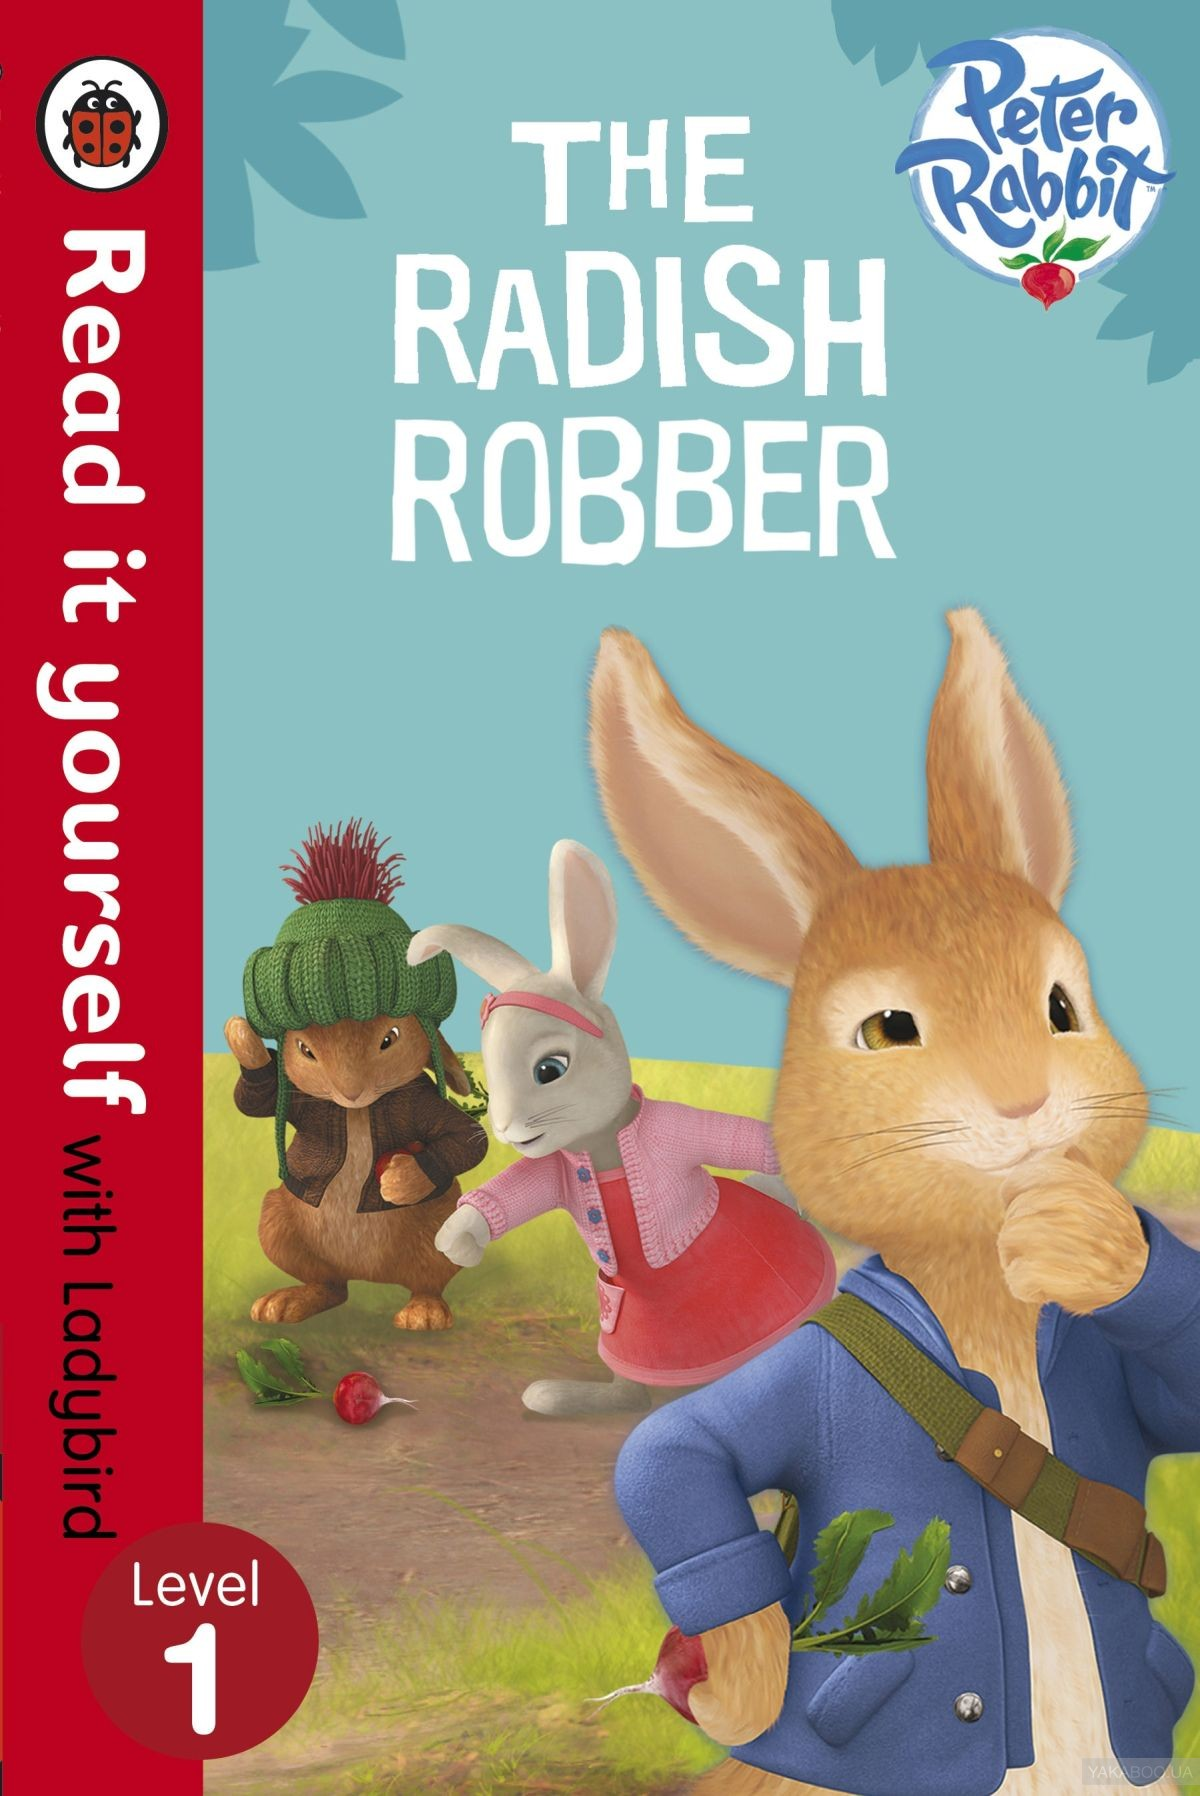 Peter Rabbit. The Radish Robber